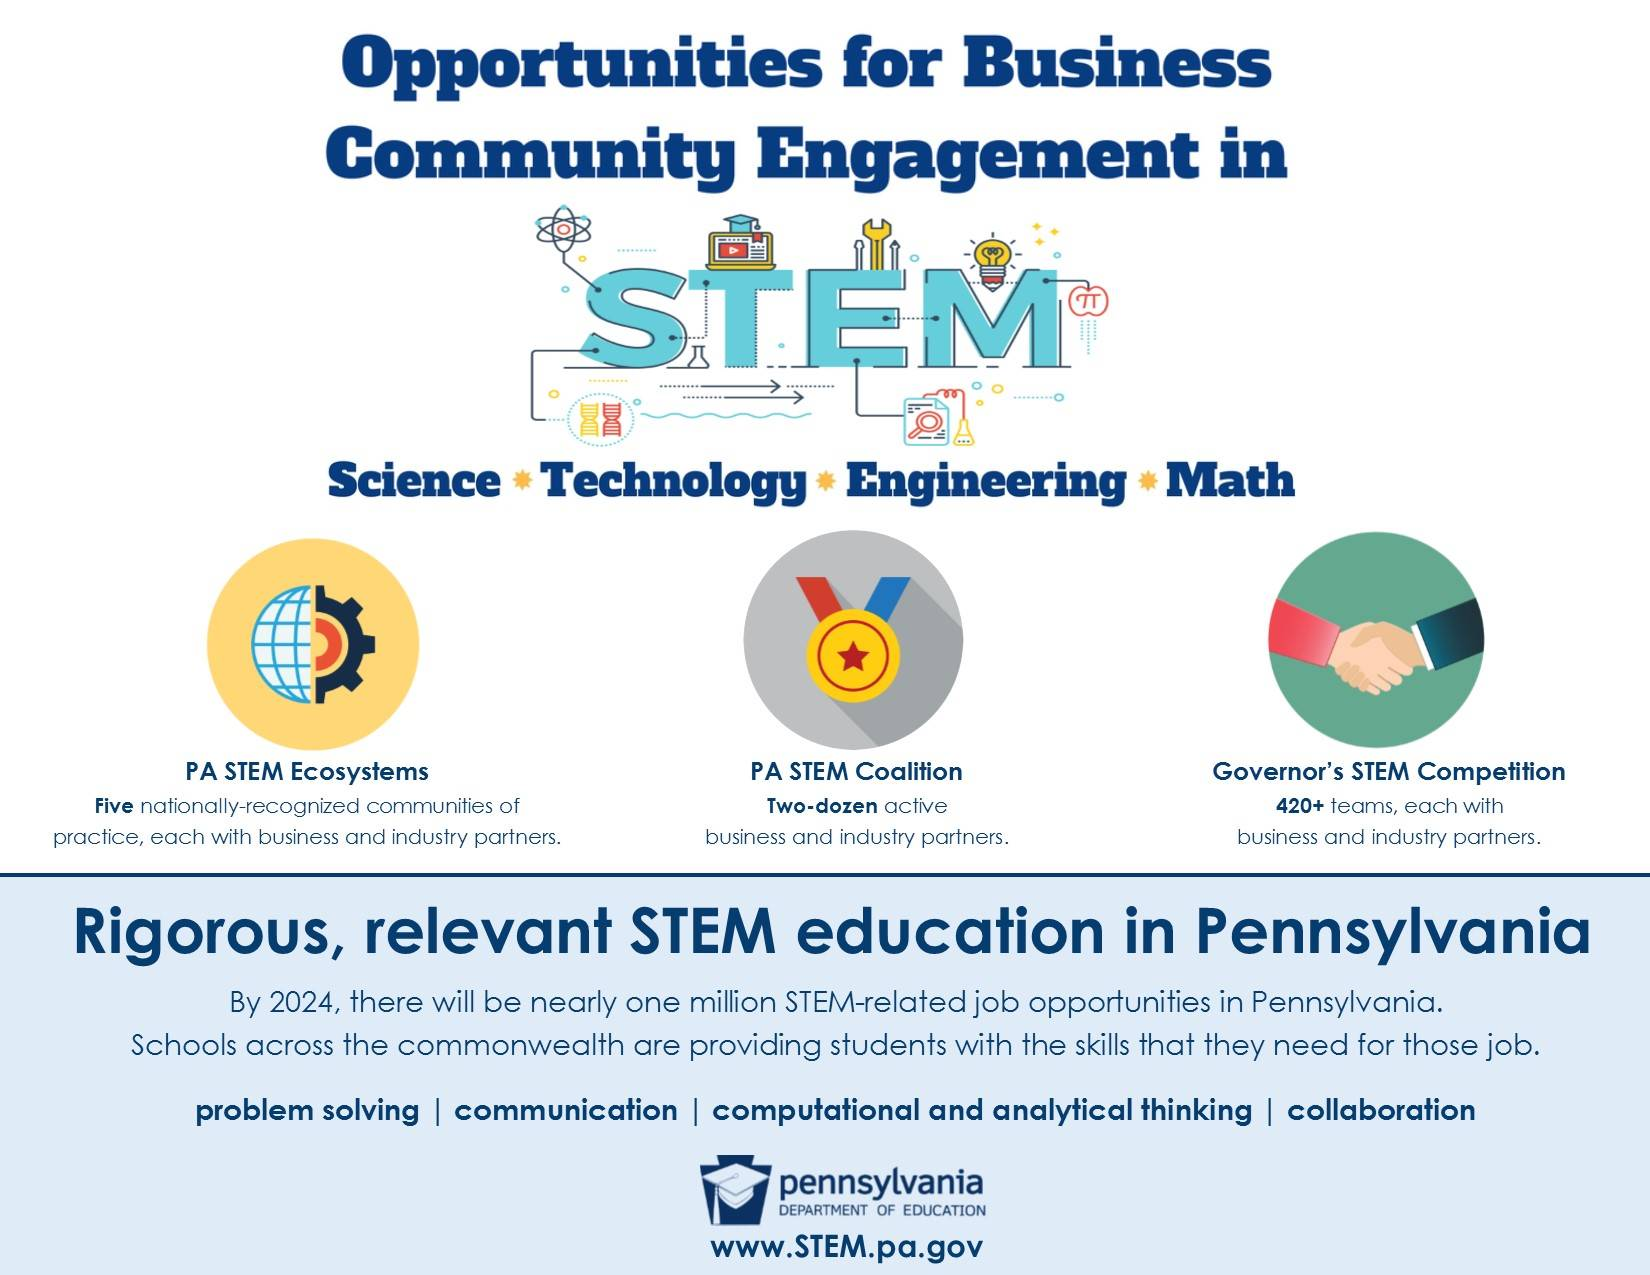 STEM Education Opportunities for Business